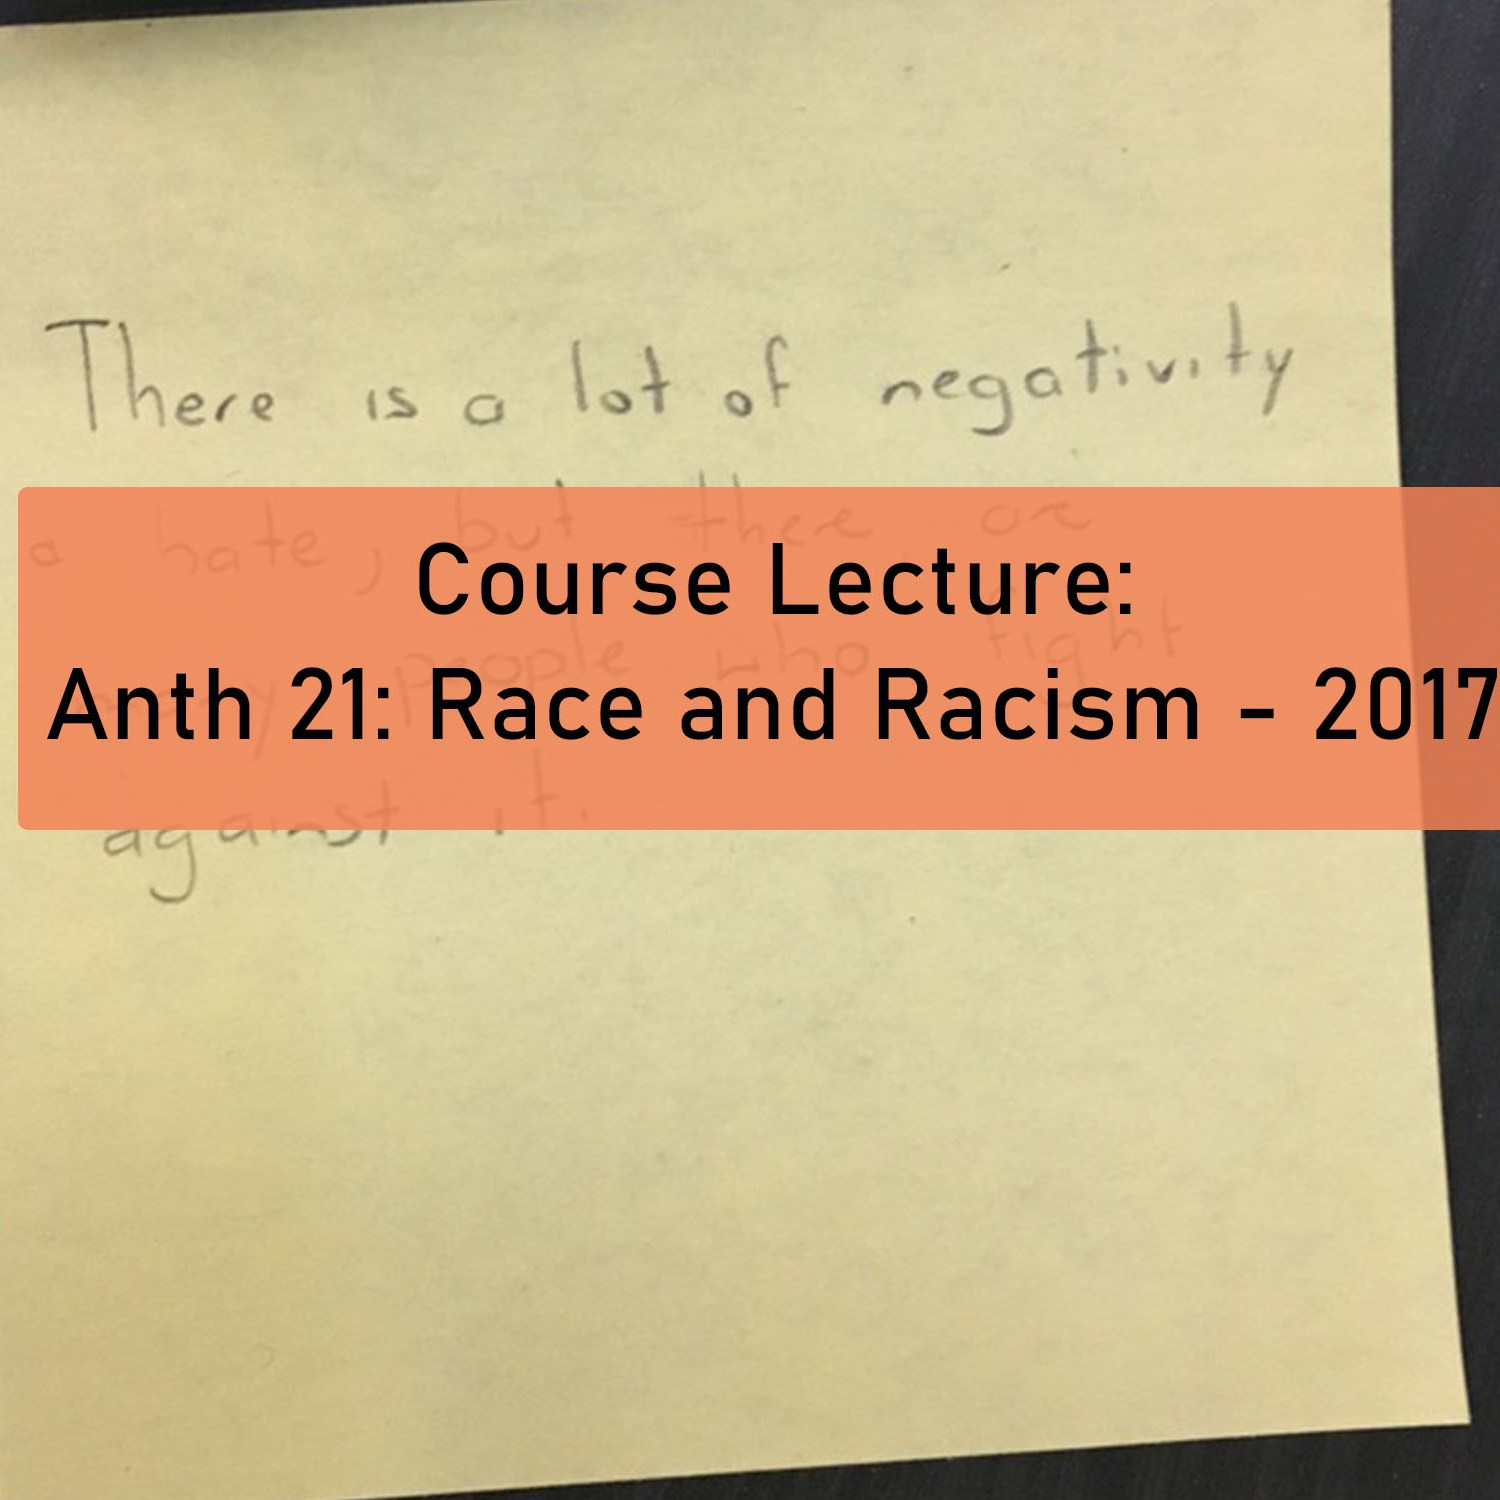 ANTH 21: Race and Racism - 2017